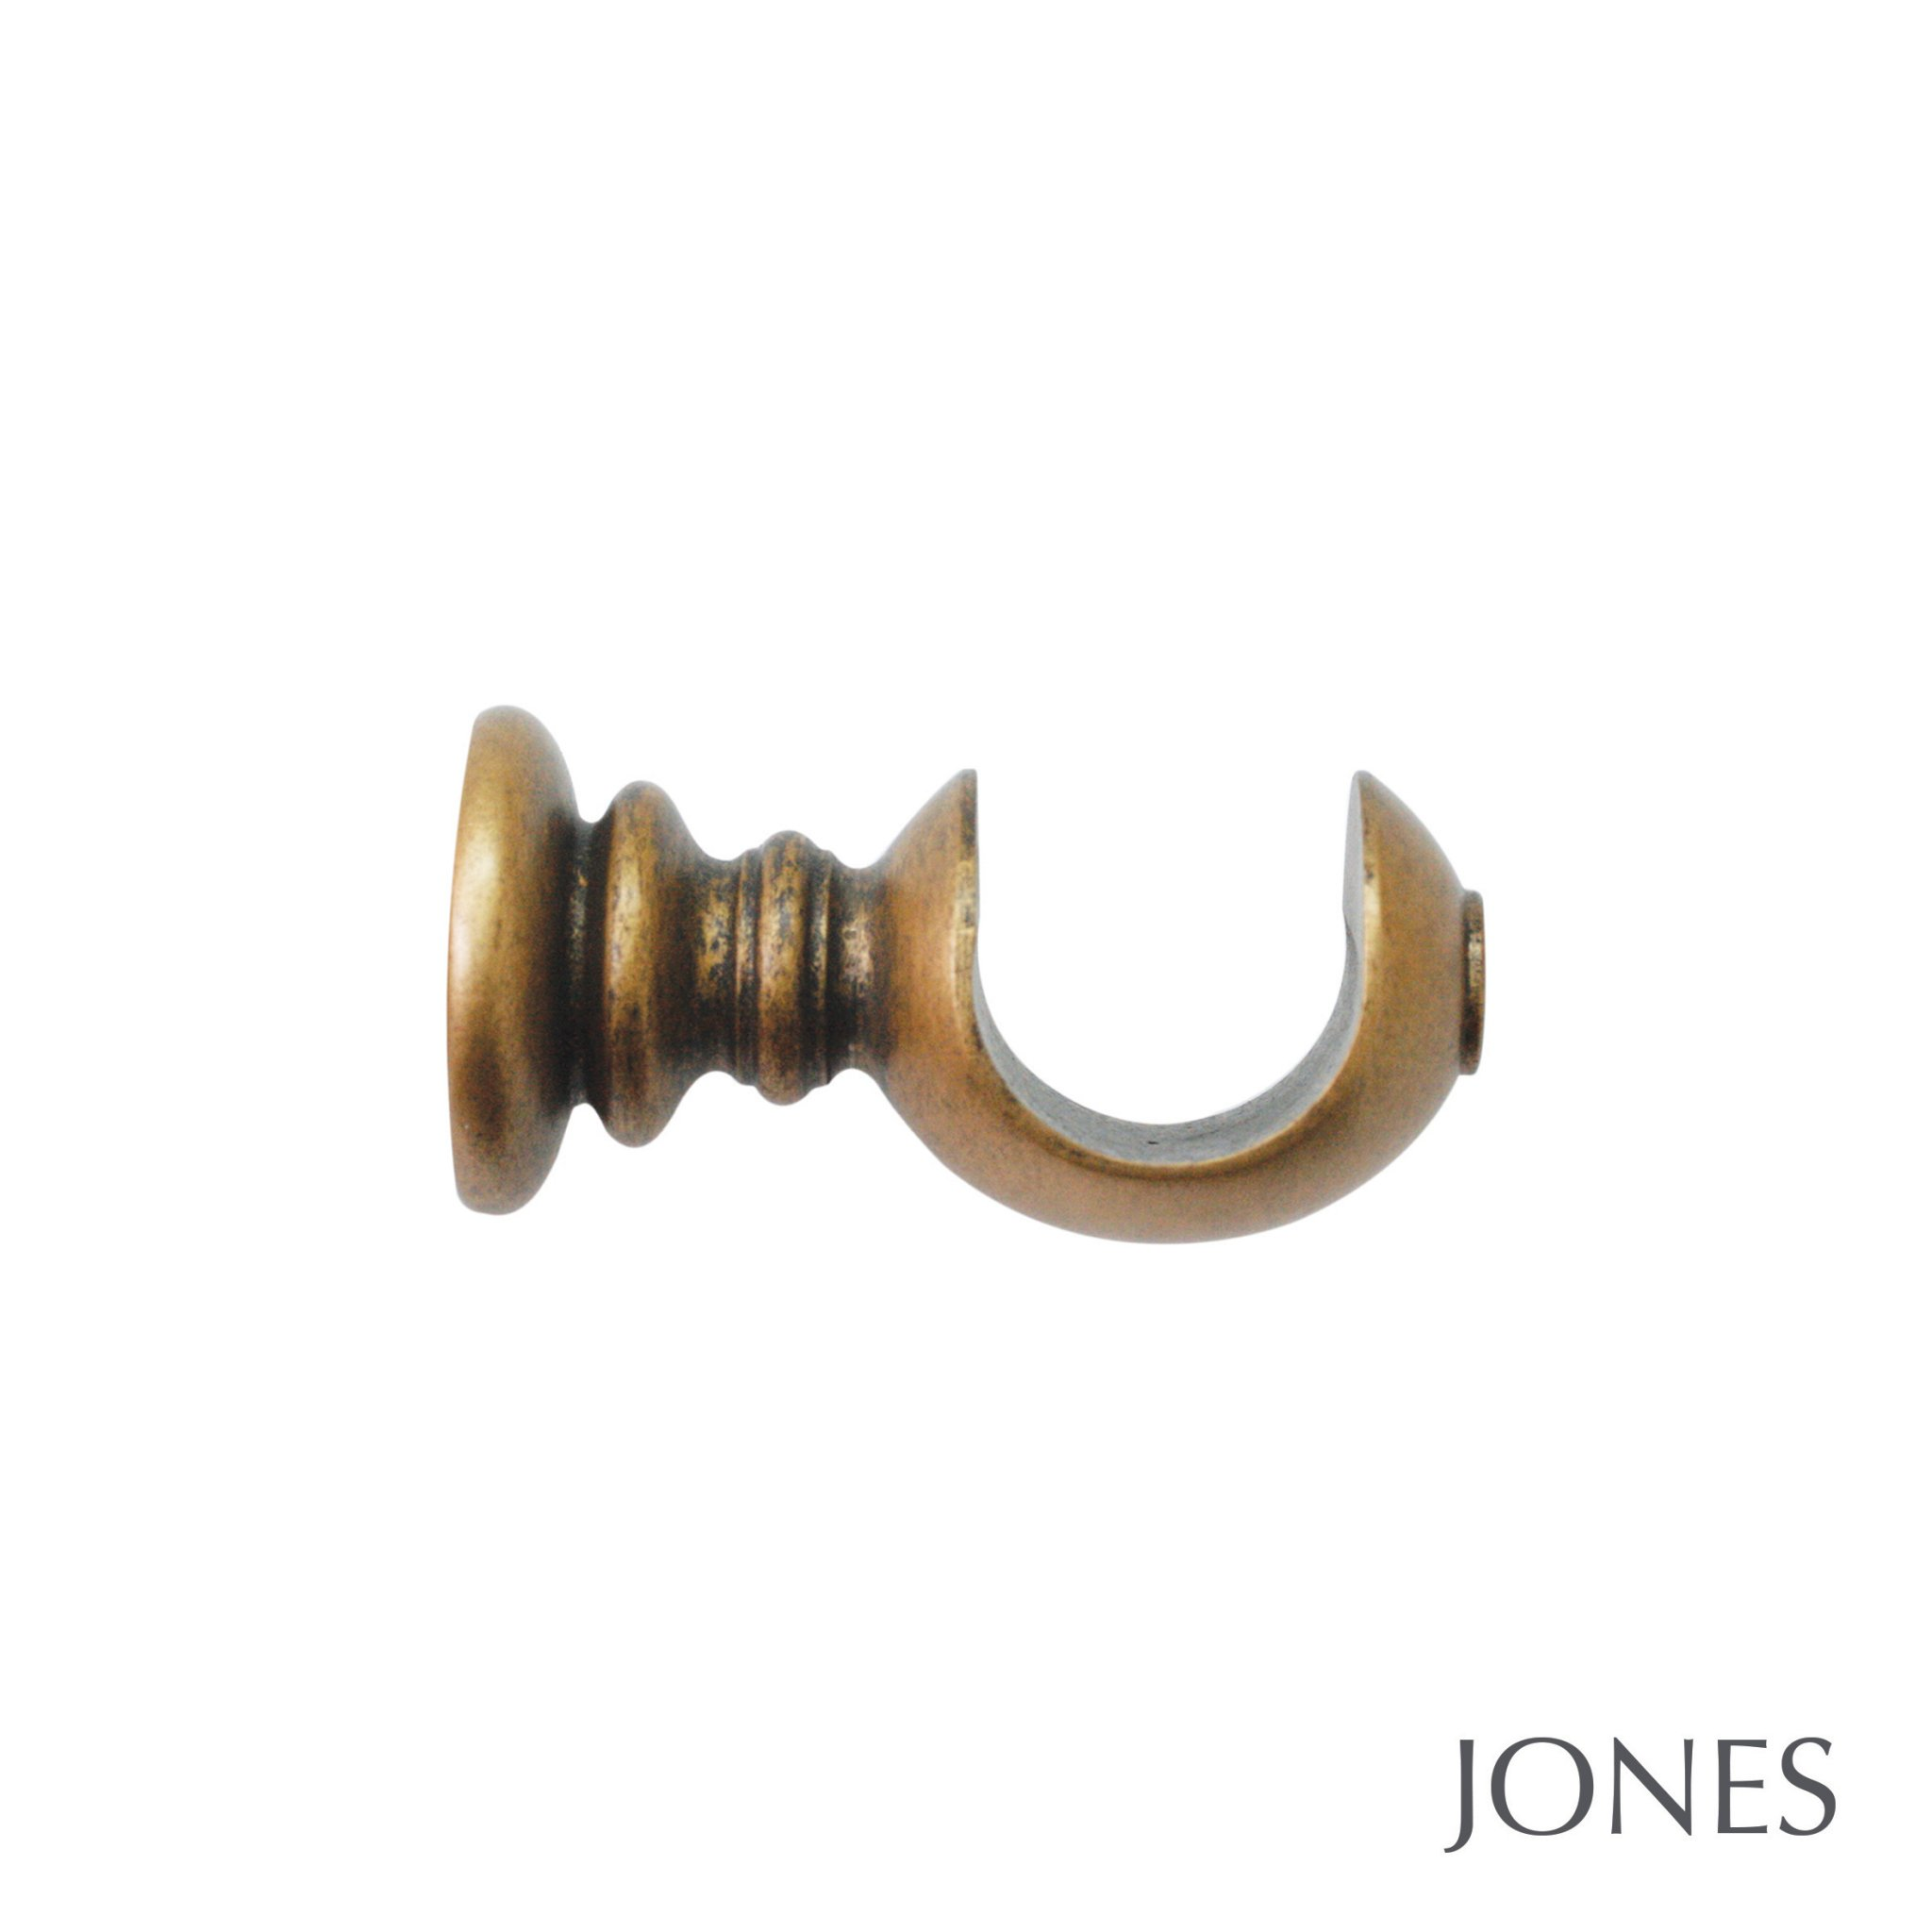 Jones Grande Handcrafted 63mm Brackets